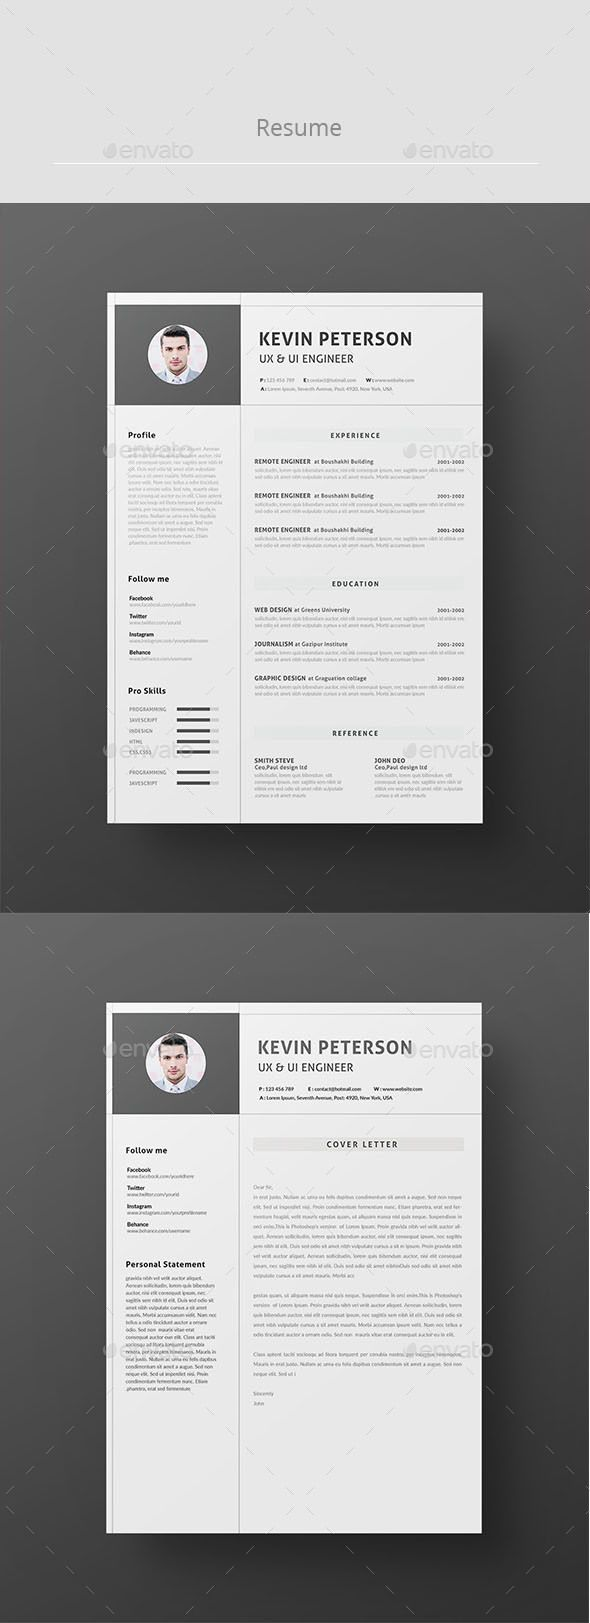 121 best Resumes CV images on Pinterest | Resume design, Resume ...